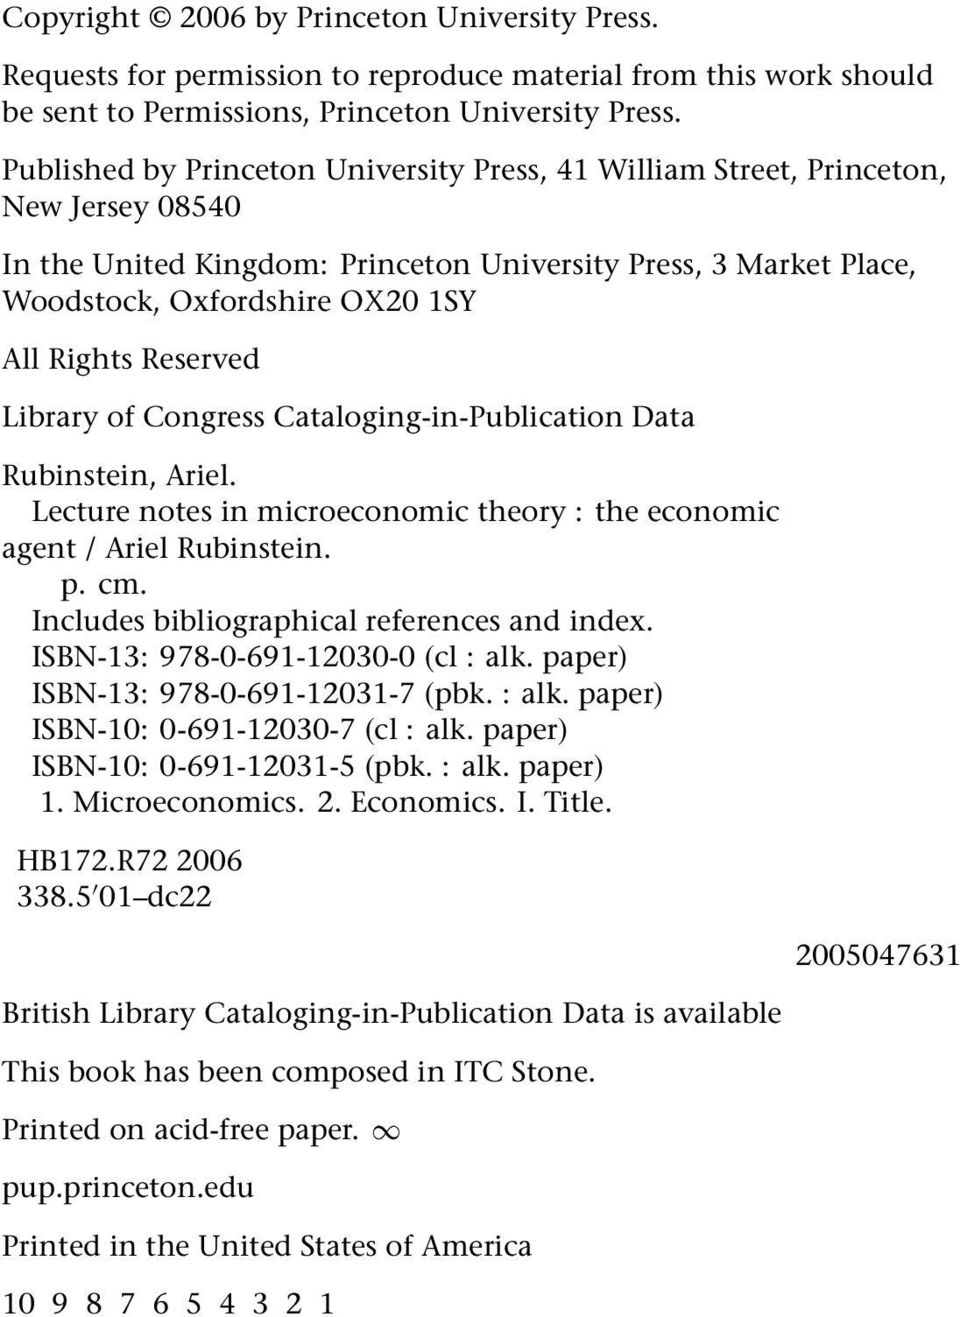 Lecture Notes in Microeconomic Theory - PDF